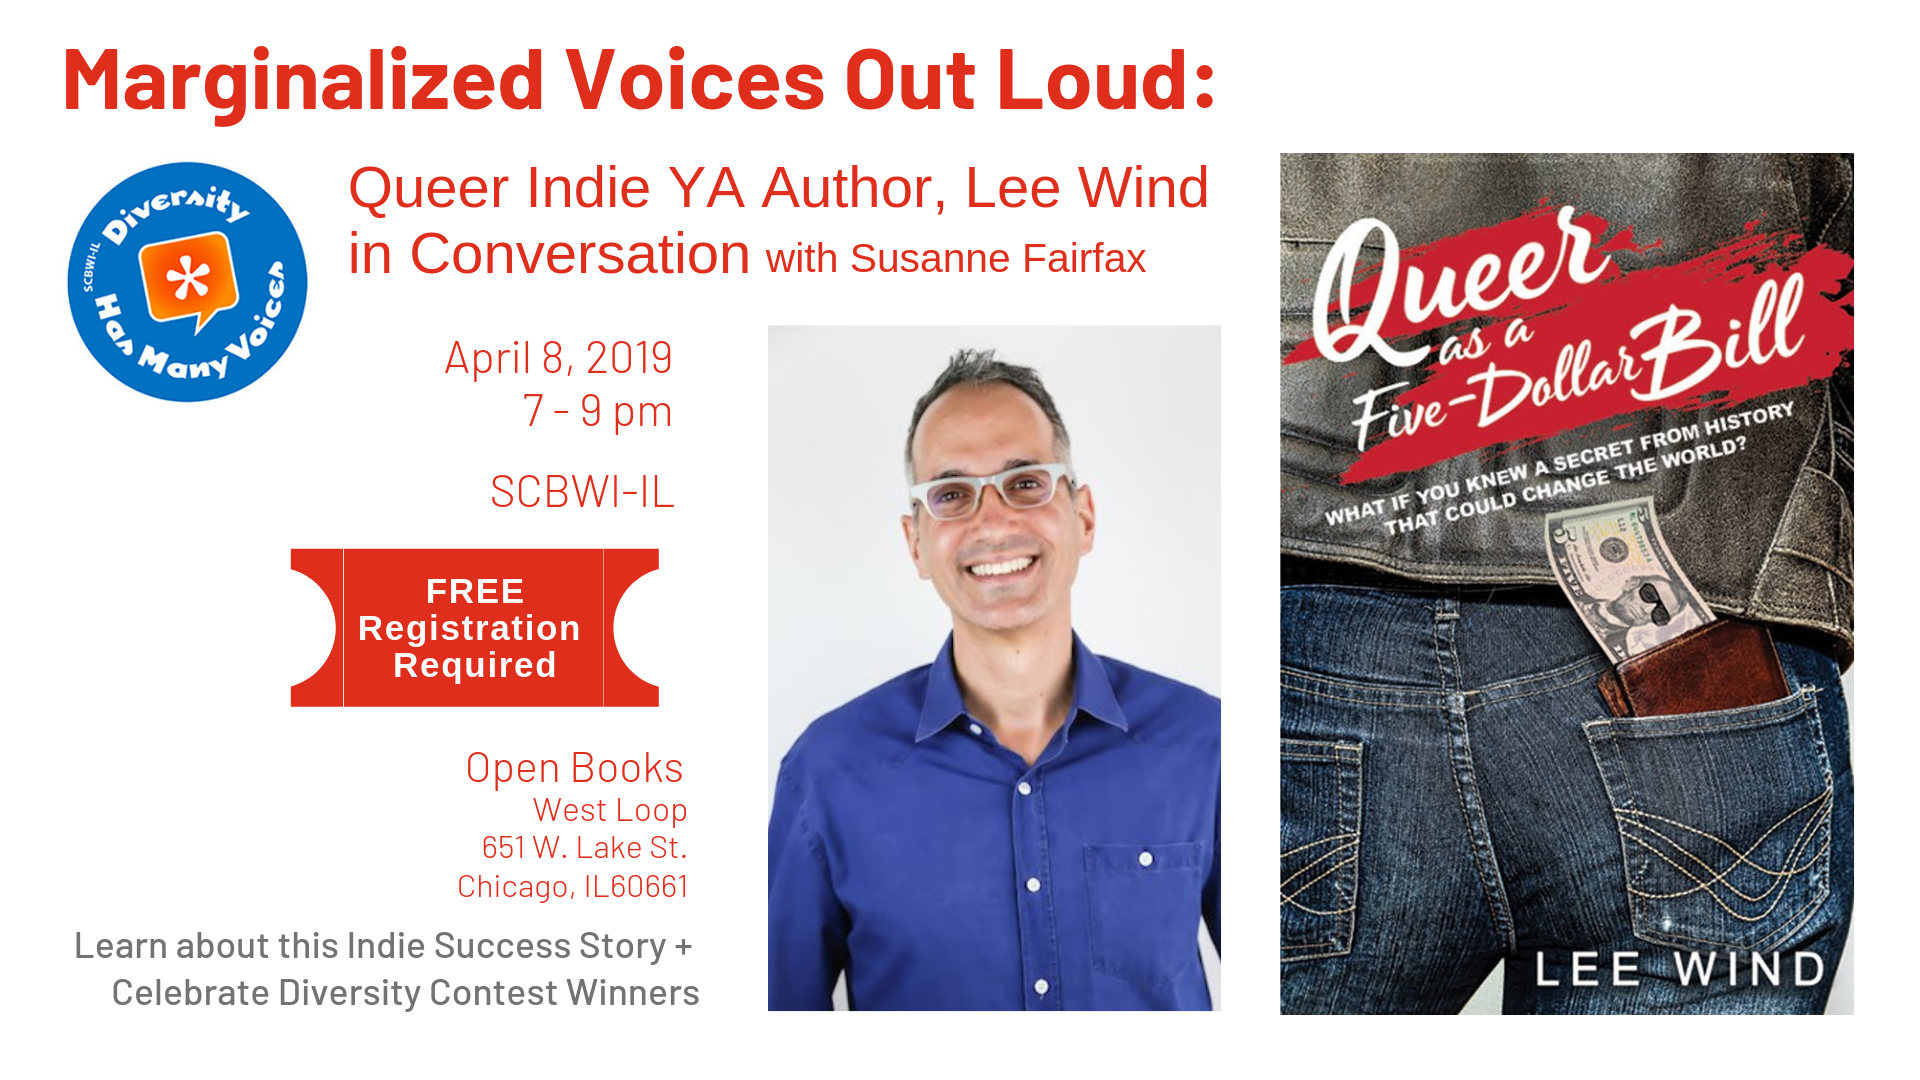 Join us as we chat with Lee Wind about indie publishing, diverse voices and announce the winners of SCBWI-IL's 2019 Diversity Prizes! FREE REGISTRATION REQUIRED: https://illinois.scbwi.org/events/scbwi-il-marginalized-voices-out-loud-queer-ya-indie-author-lee-wind-in-conversation/